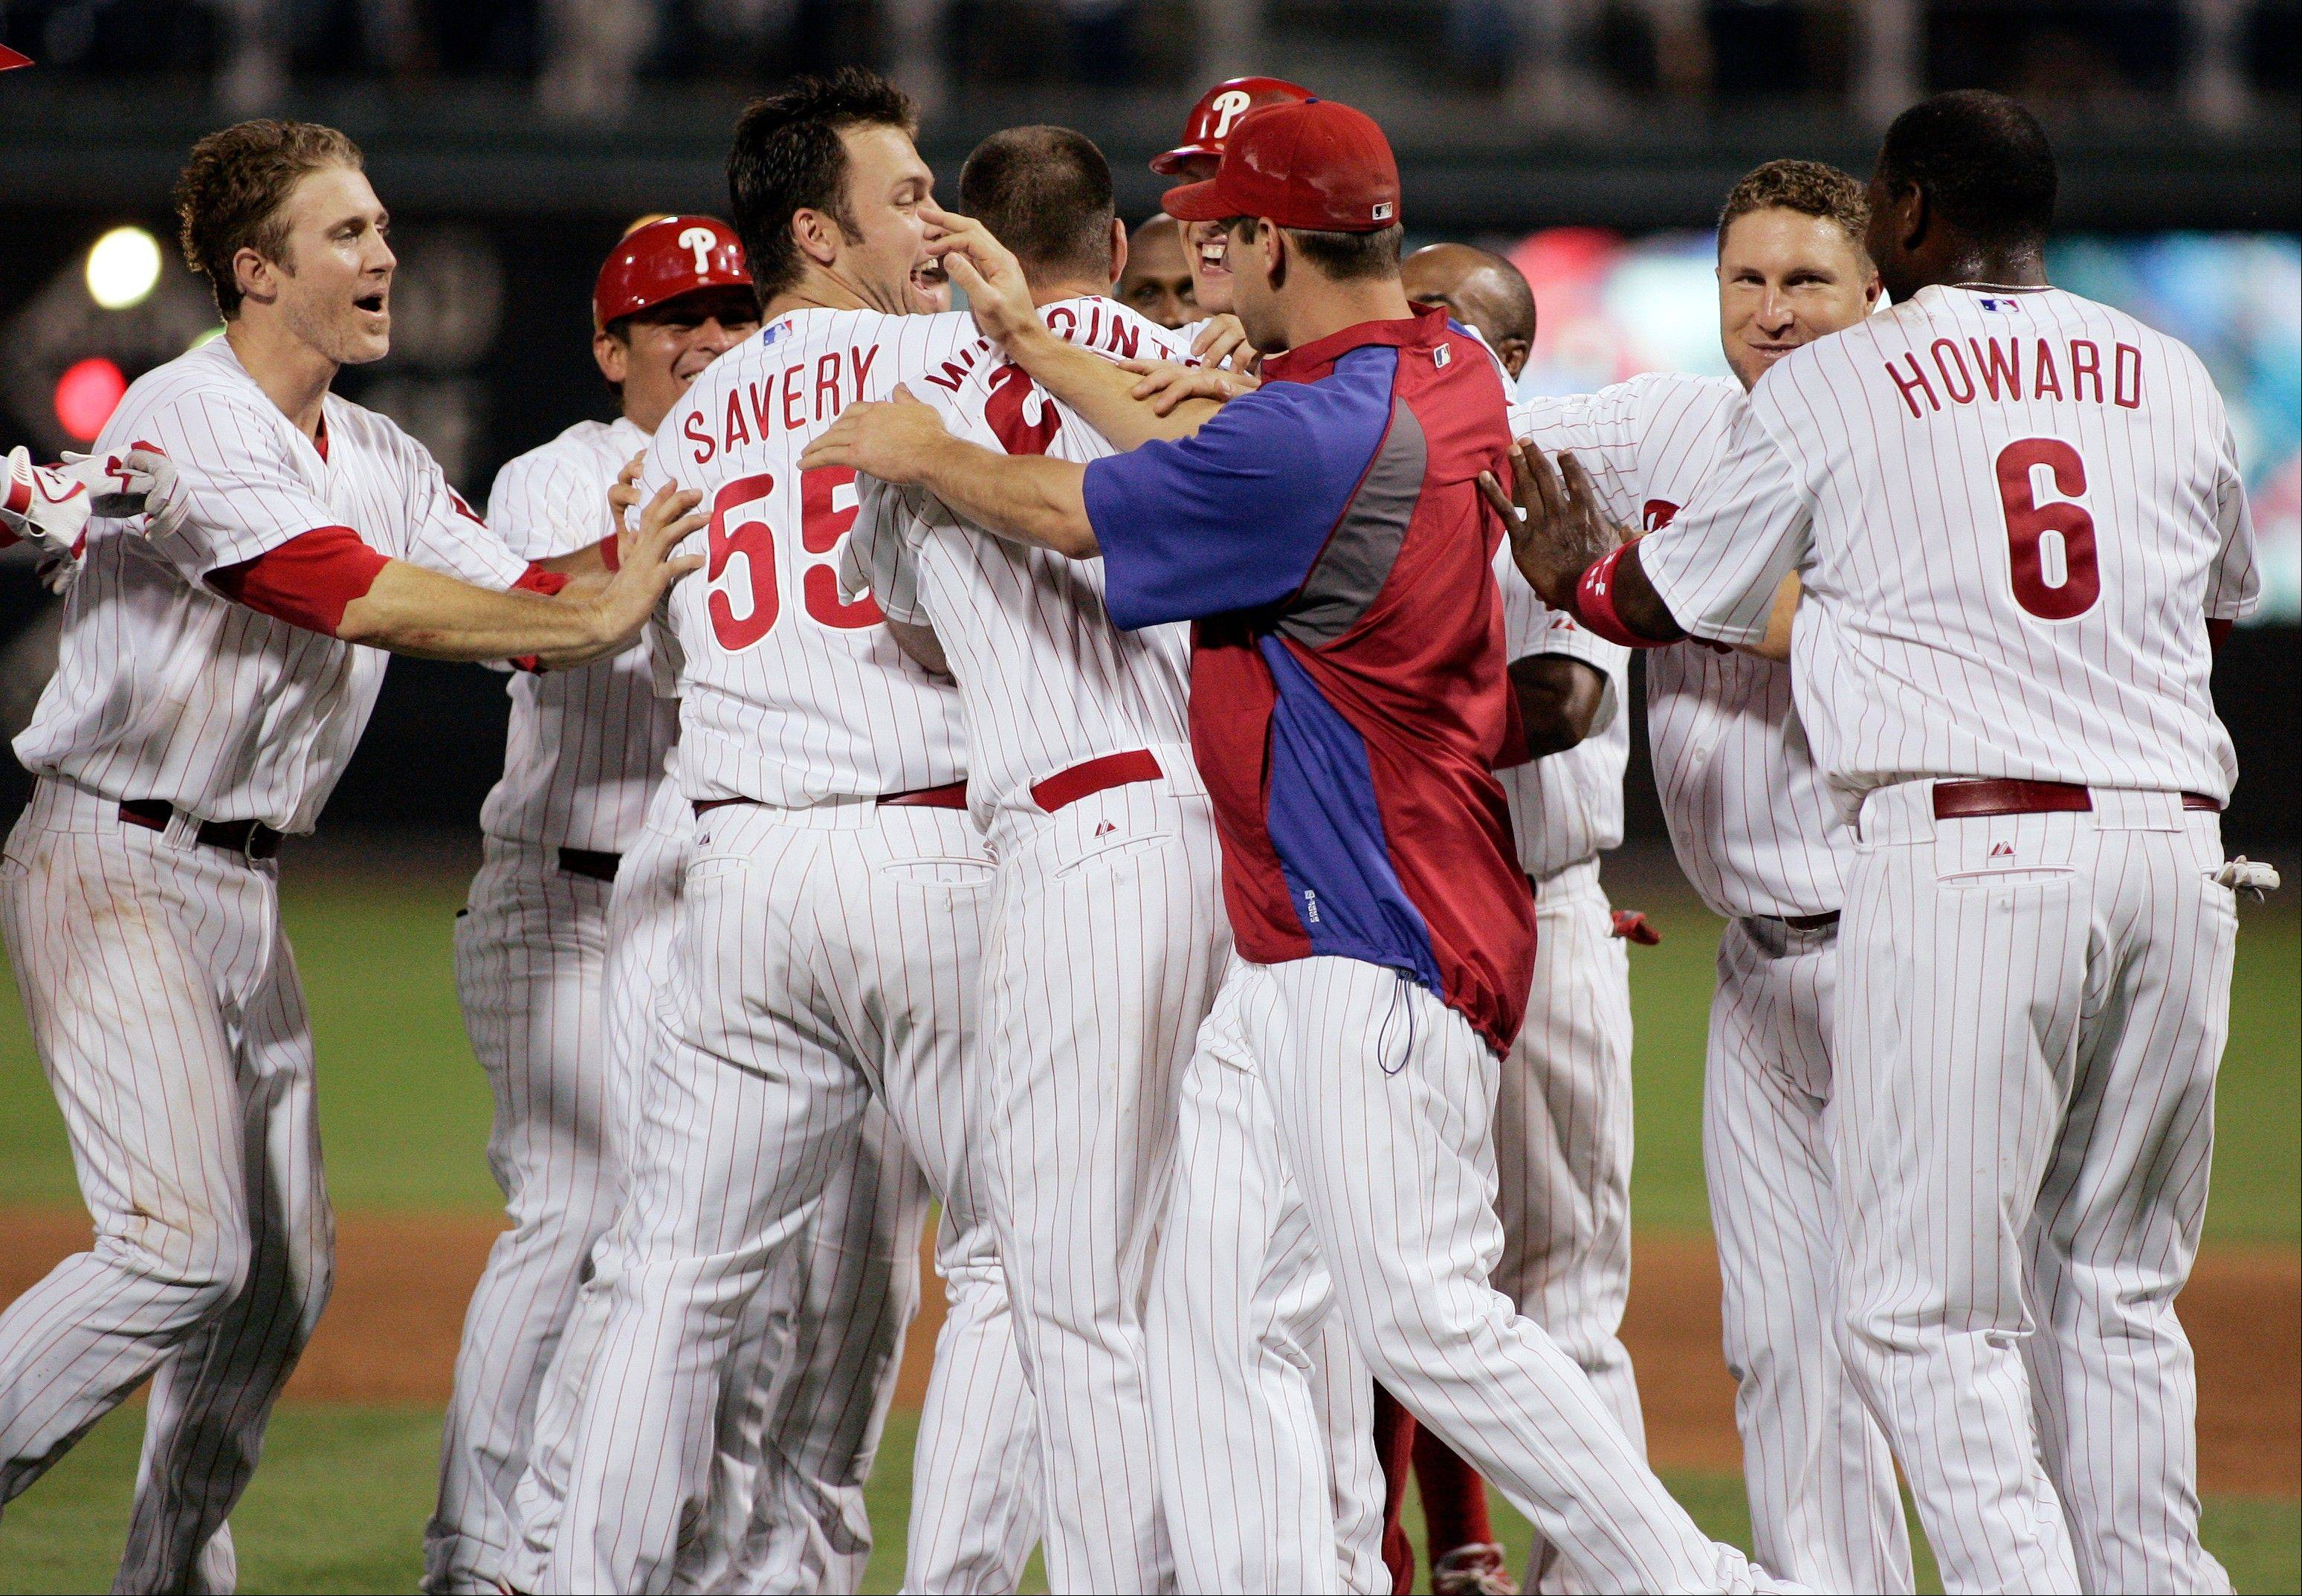 The Phillies swarm around Ty Wigginton after his sacrifice fly scored Erik Kratz in the bottom of the ninth inning Monday night to beat Milwaukee.